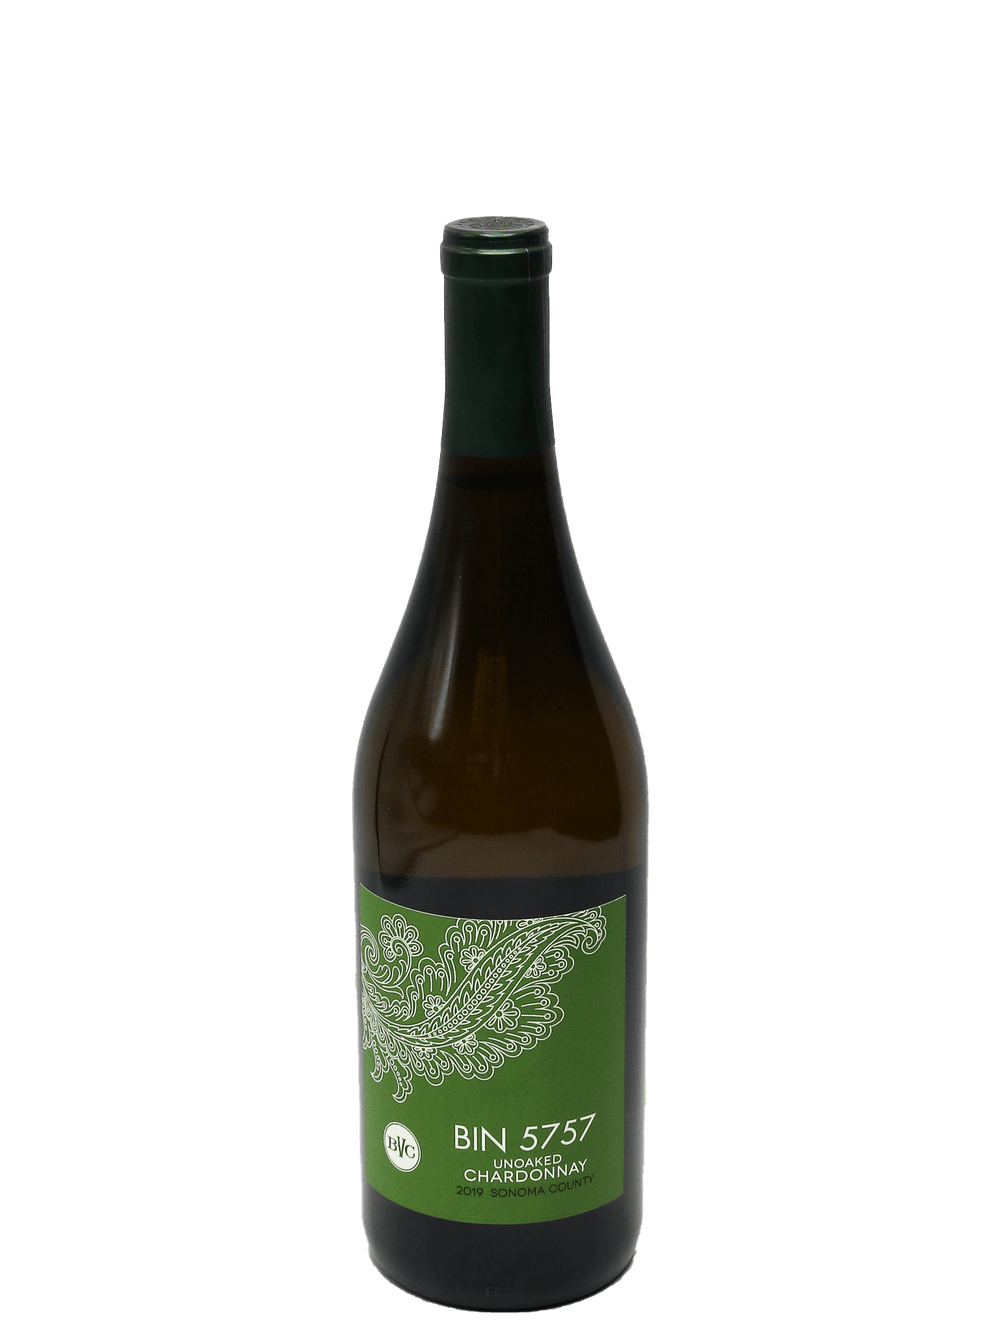 2019 Bennett Valley Cellars Bin 5757 Chardonnay